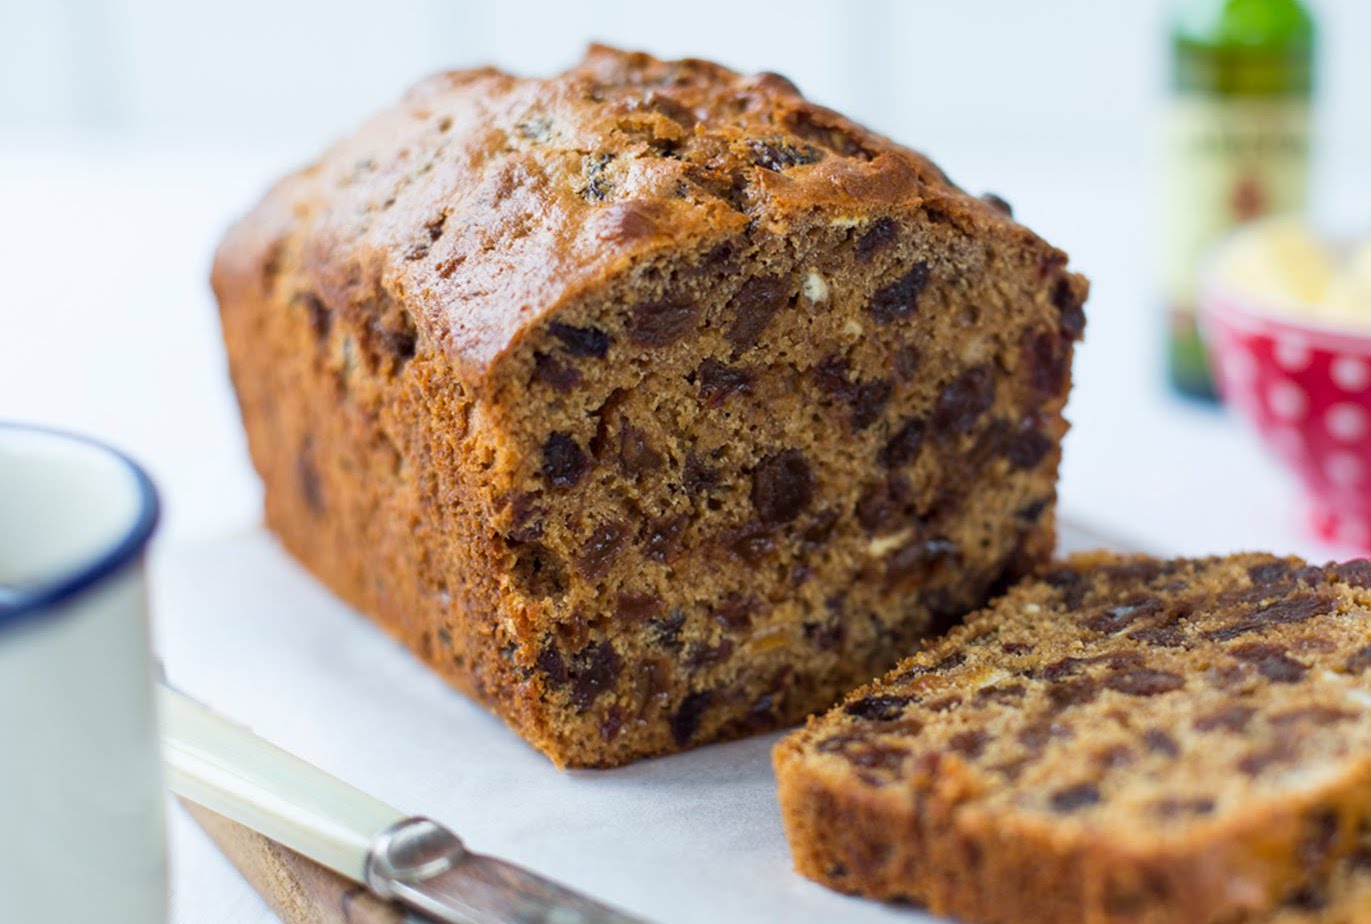 Barm brack by Donal Skehan | Courtesy of DonalSkehan.com